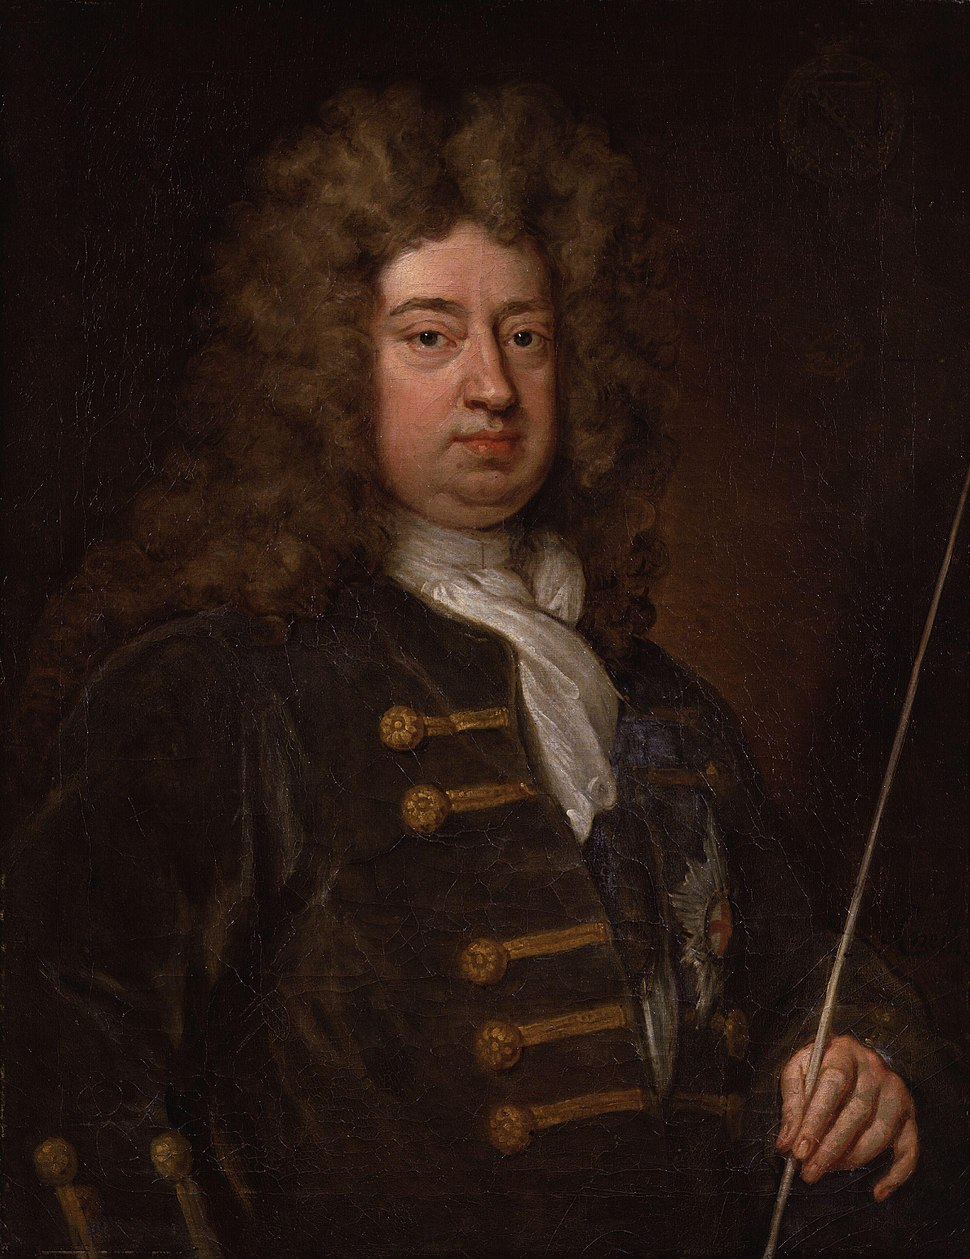 Charles Sackville, 6th Earl of Dorset by Sir Godfrey Kneller, Bt (2)